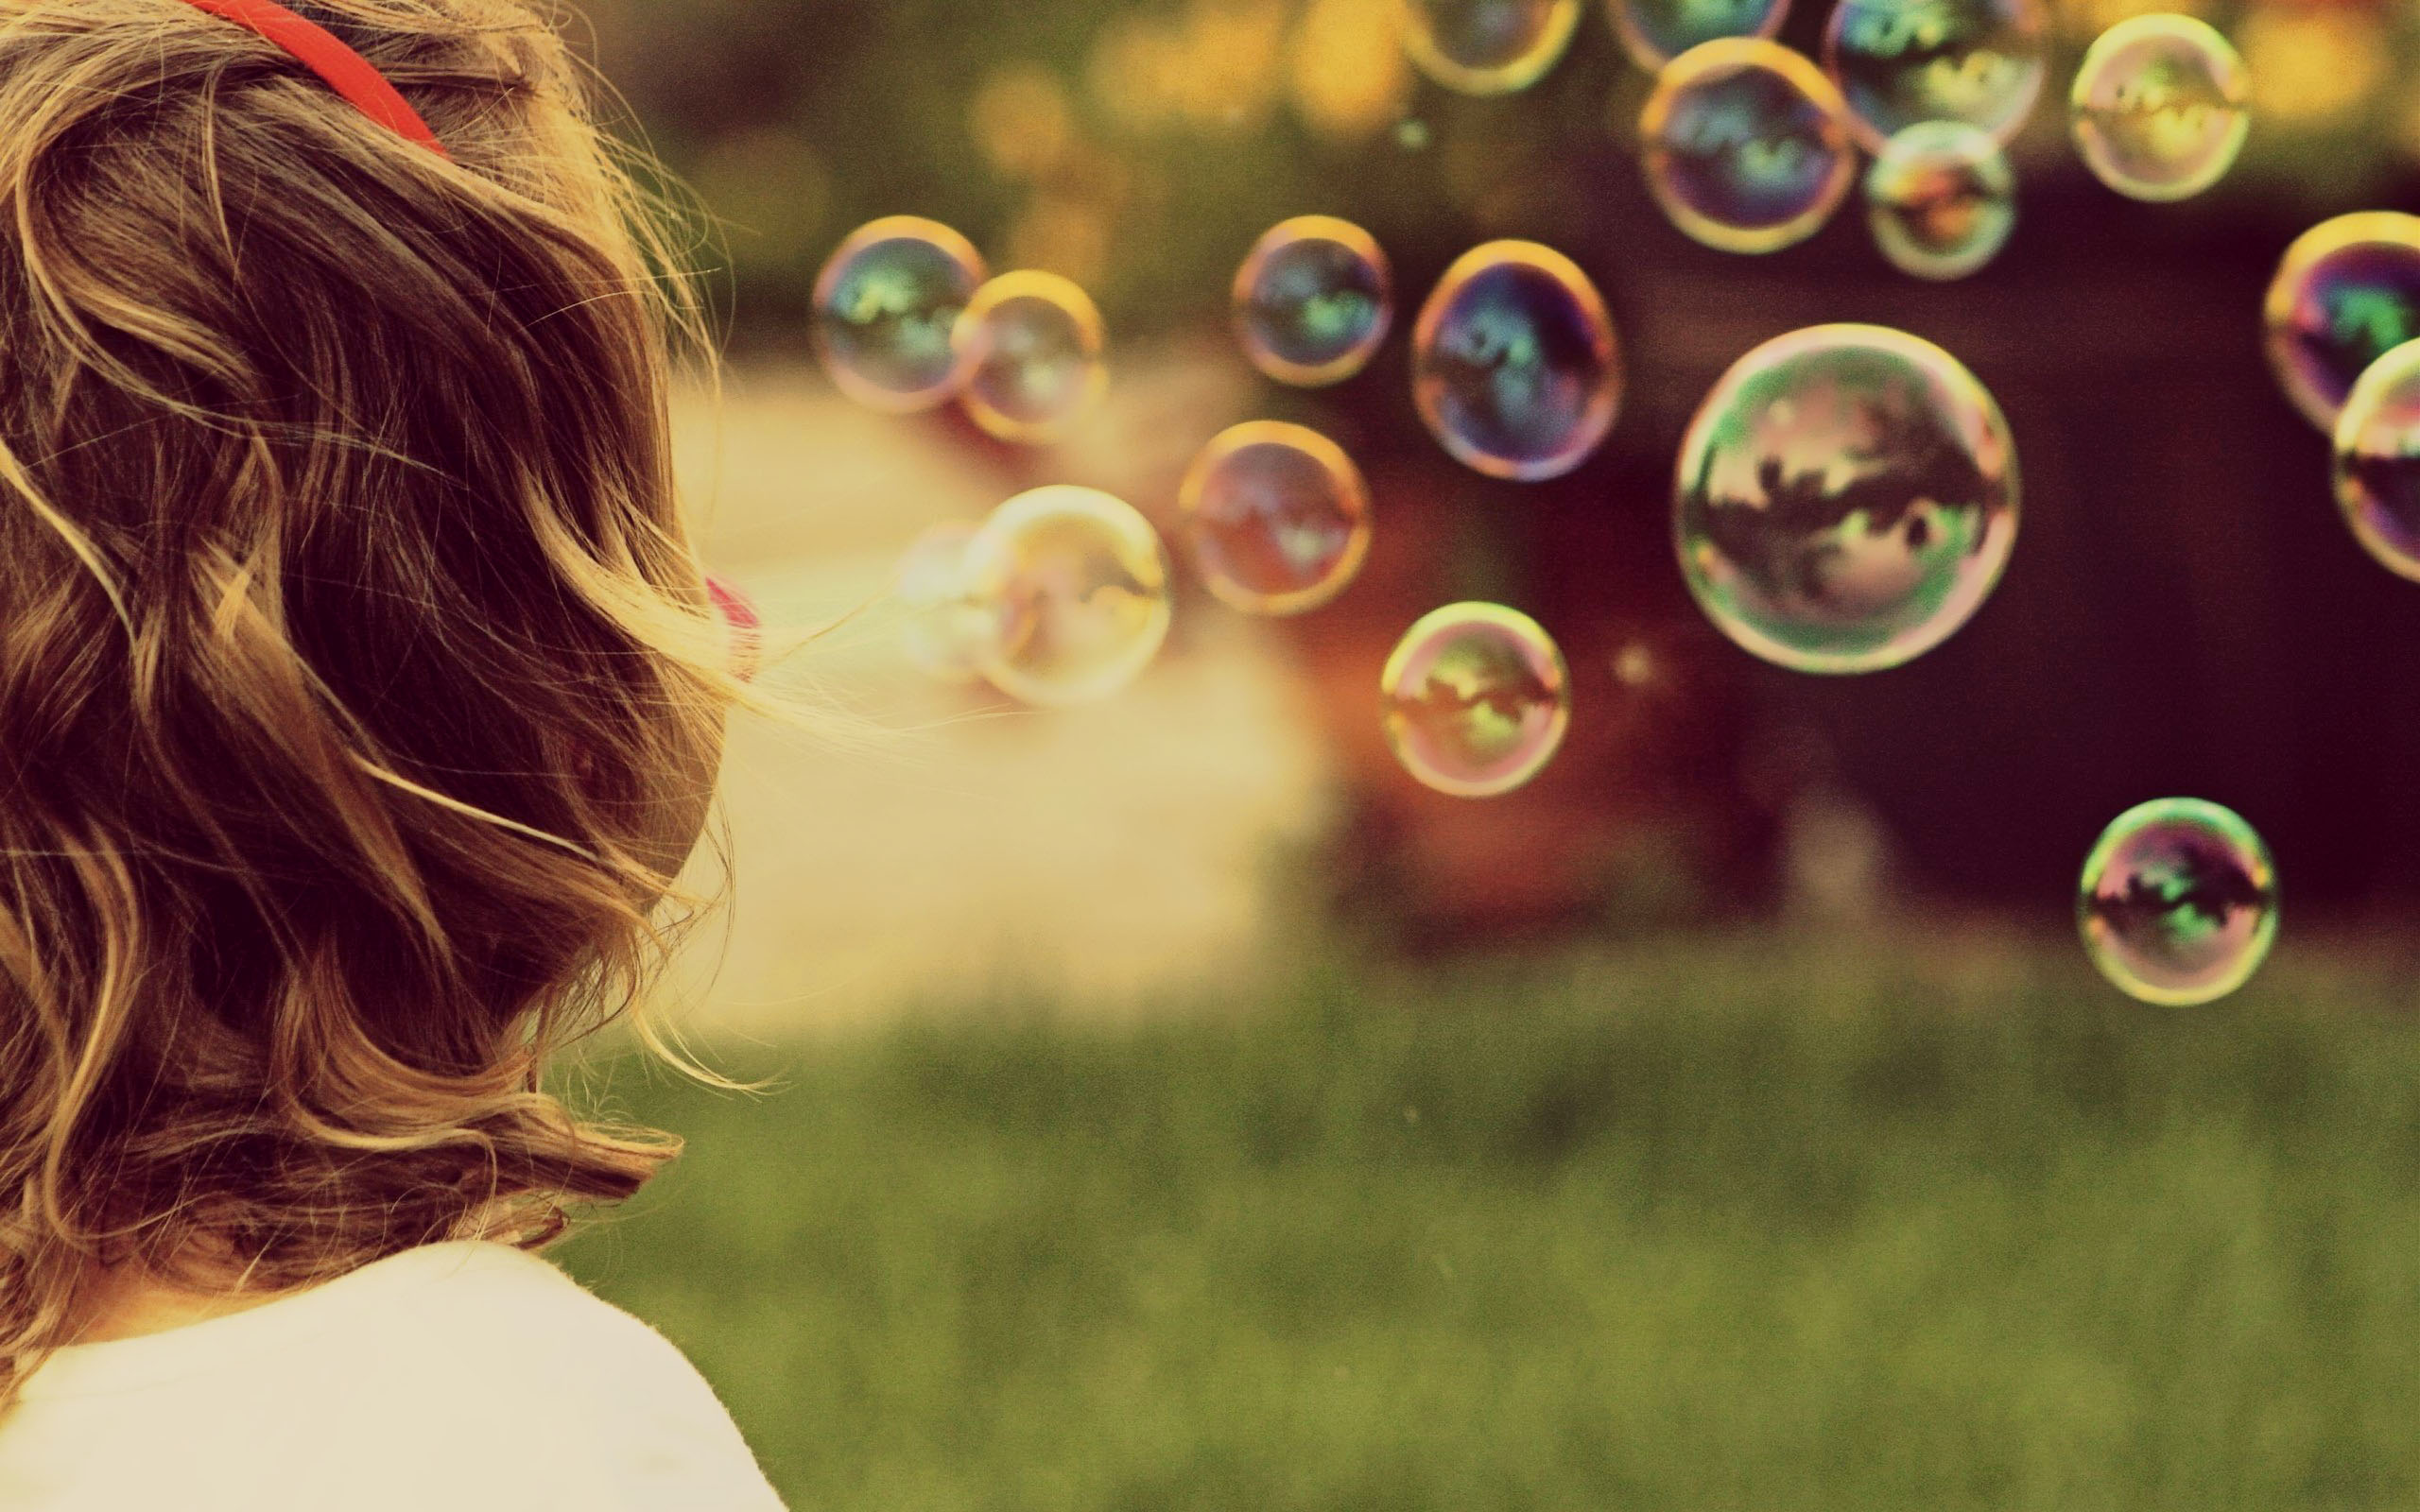 awesome soap bubbles wallpaper 35005